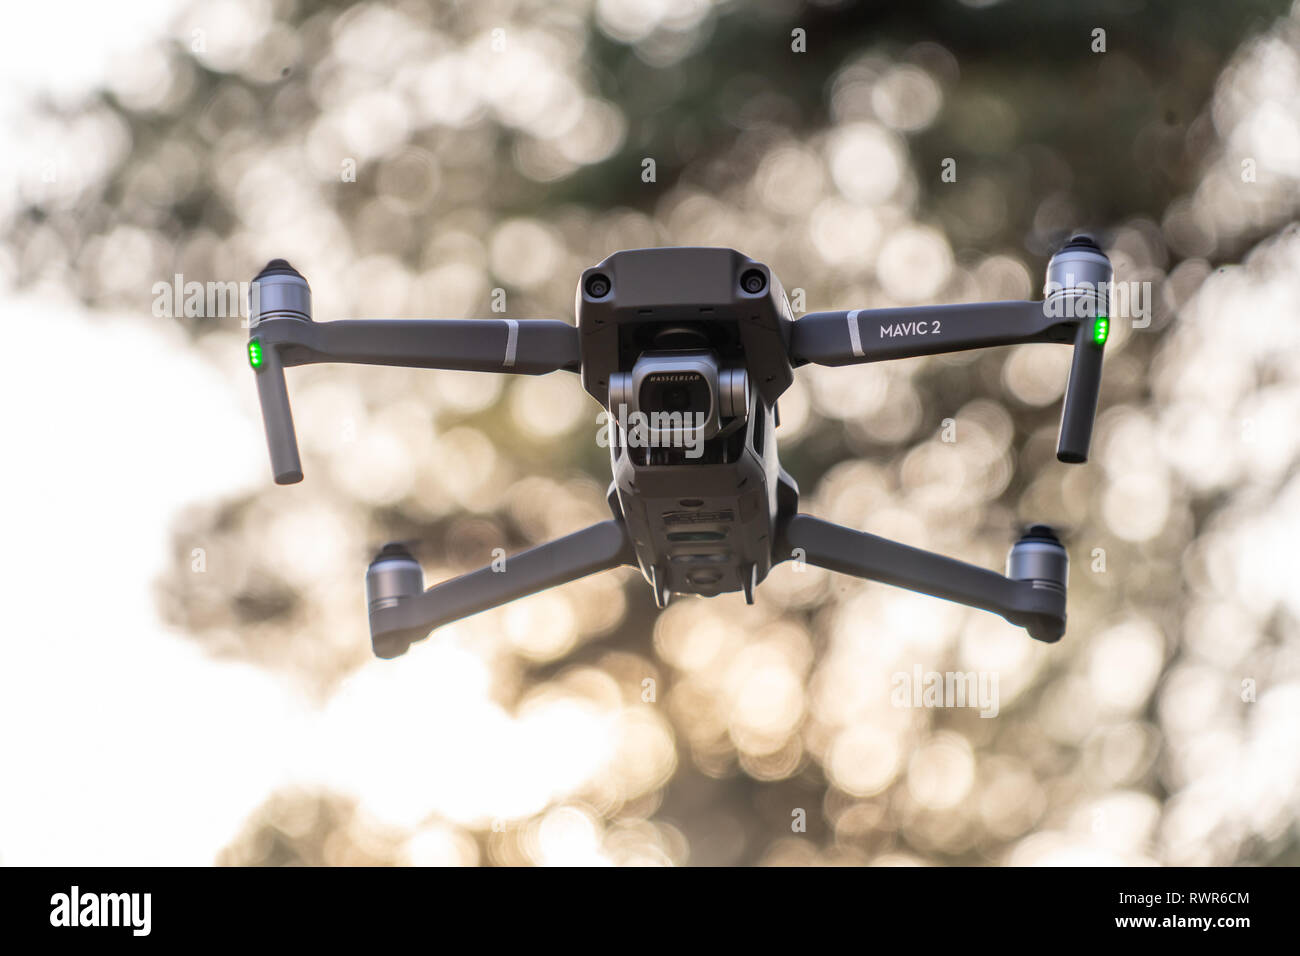 Gifhorn, Germany, February 17., 2019: The hobby drone Mavic 2 pro of a Chinese manufacturer flying in the forest, exempted by reduced depth of field - Stock Image